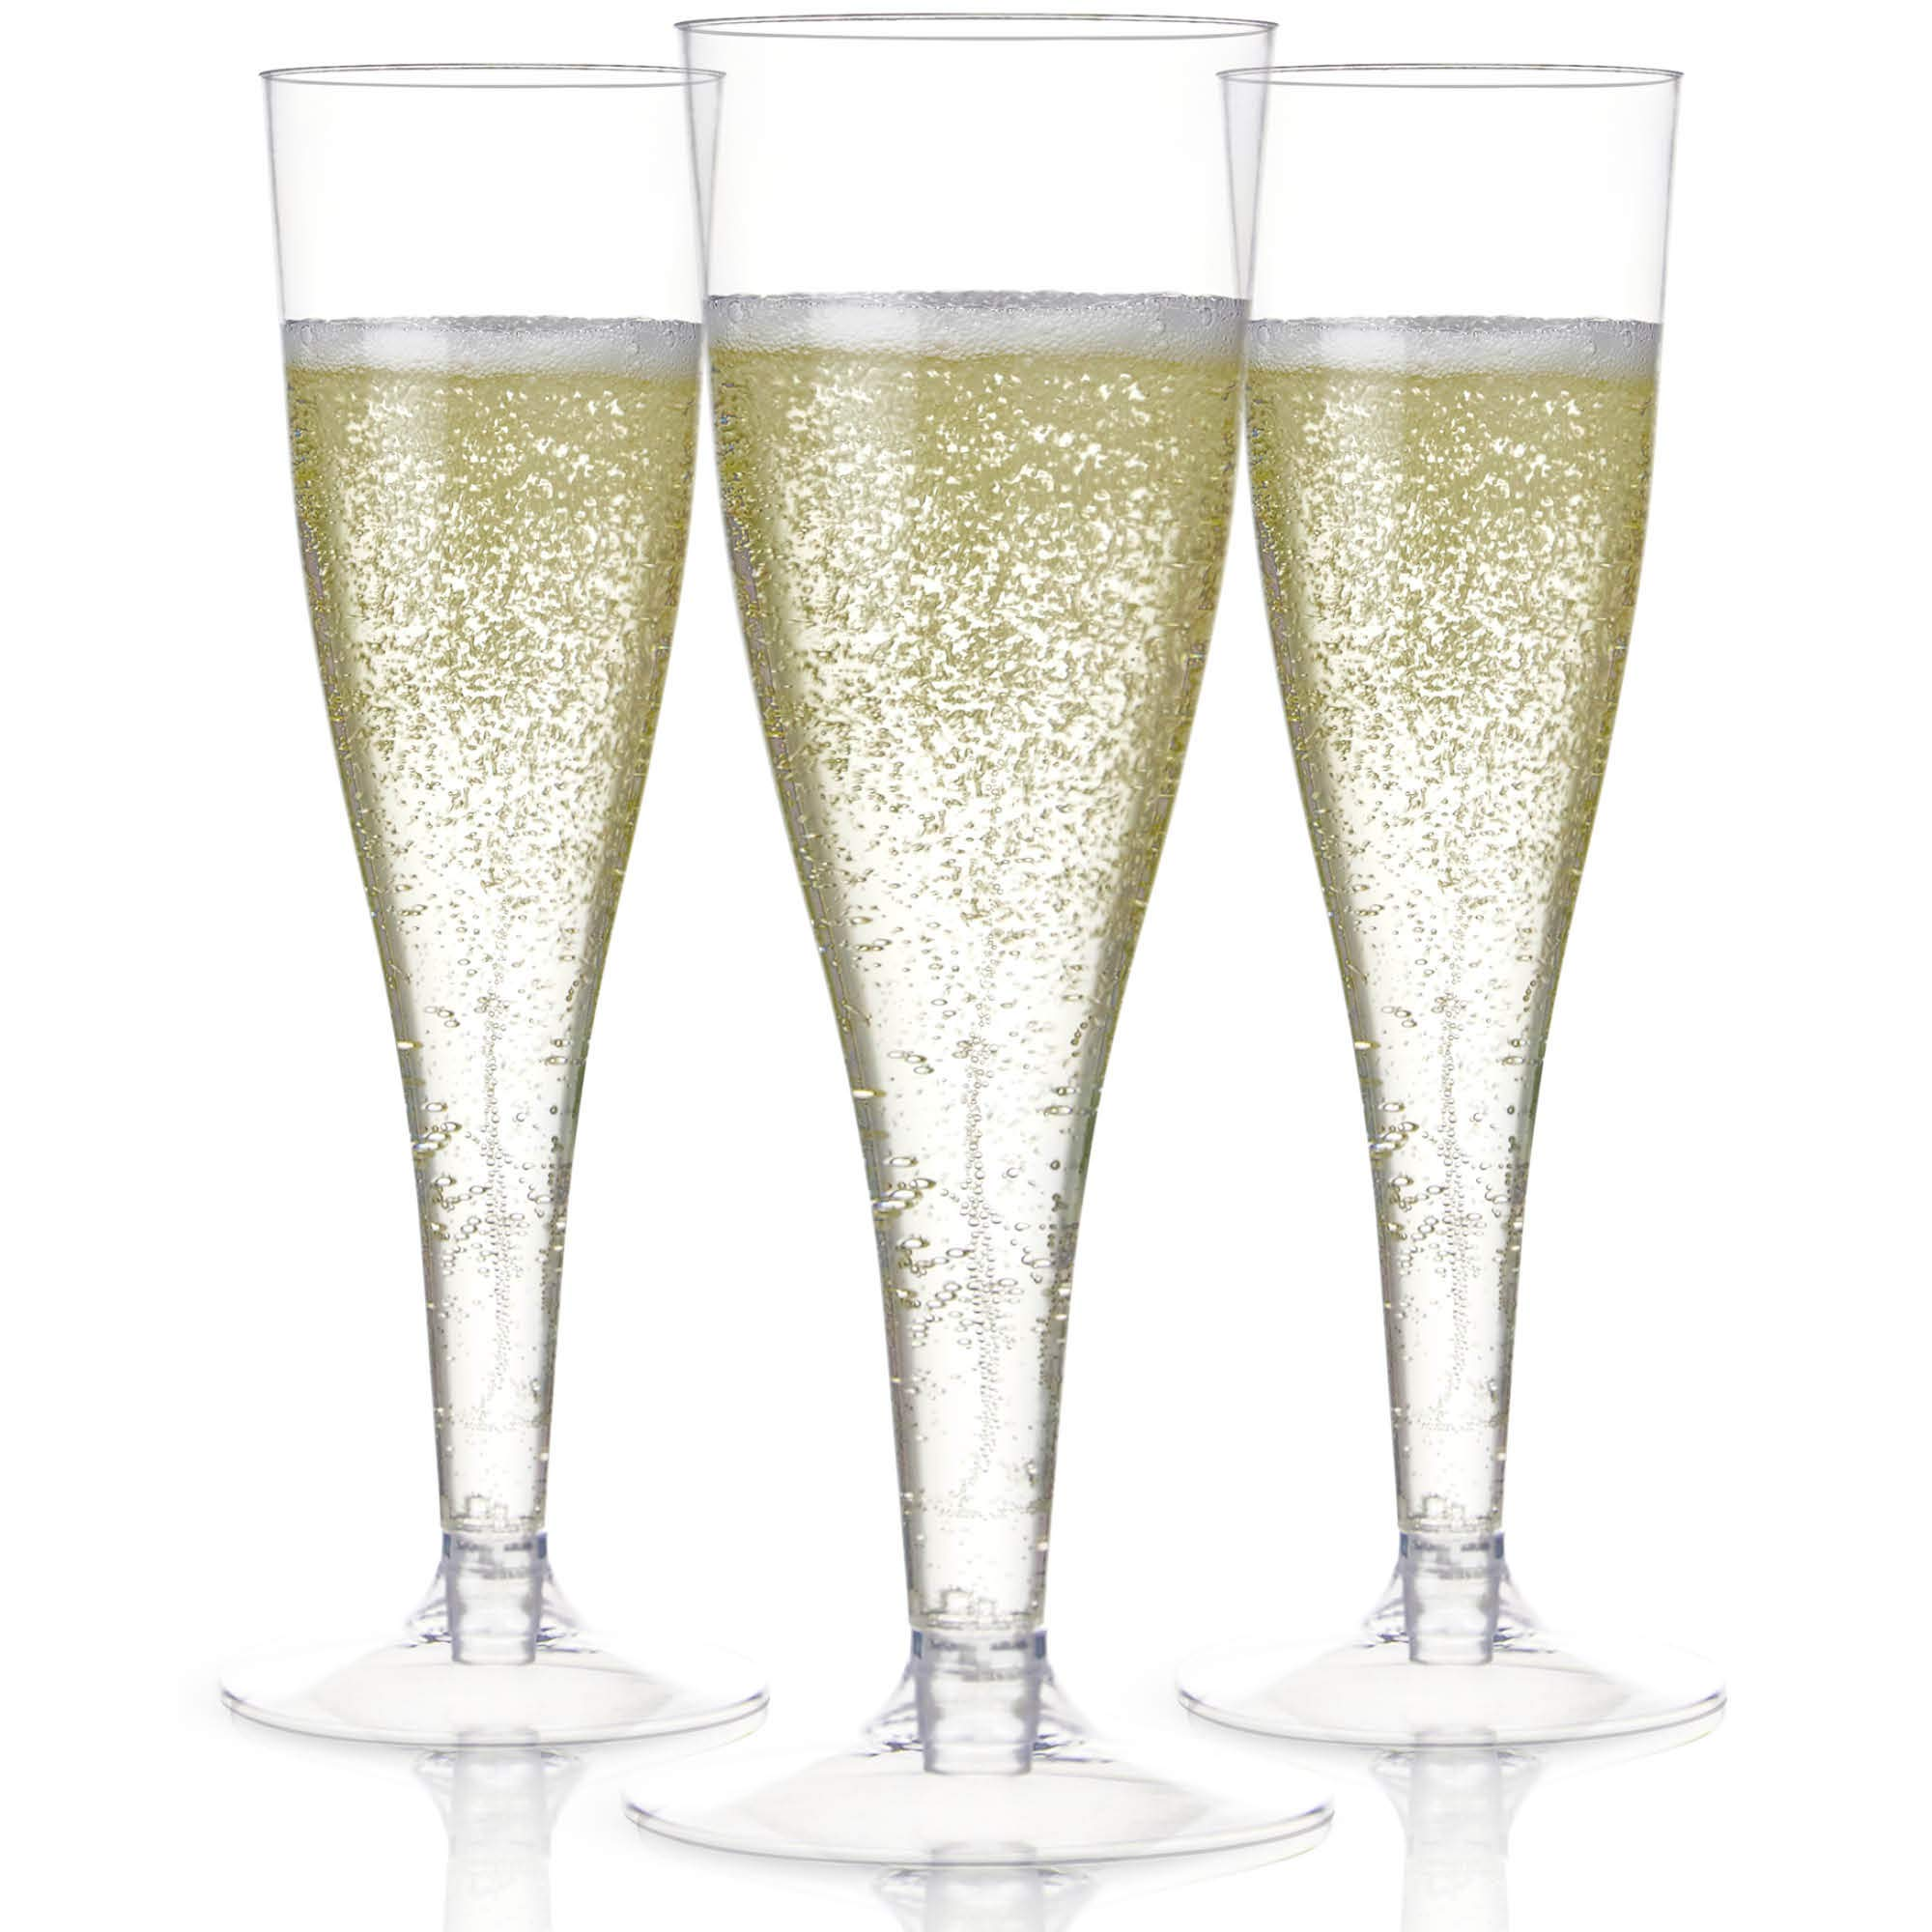 100 Plastic Champagne Flutes Disposable | Clear Plastic Champagne Glasses for Parties | Clear Plastic Cups | Plastic Toasting Glasses | Mimosa Glasses | Wedding Party Bulk Pack by Prestee